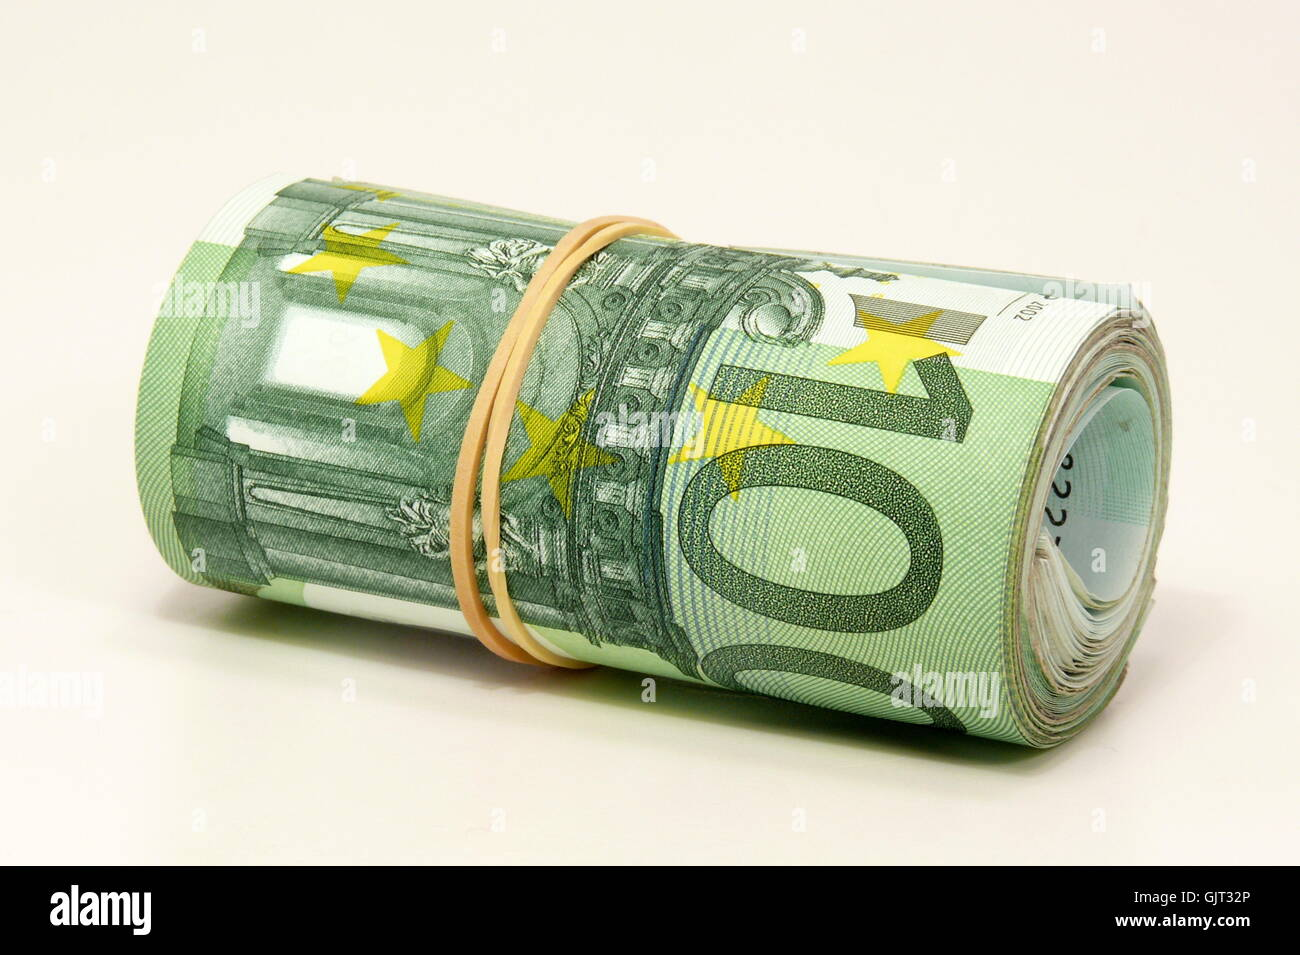 european currency - Stock Image